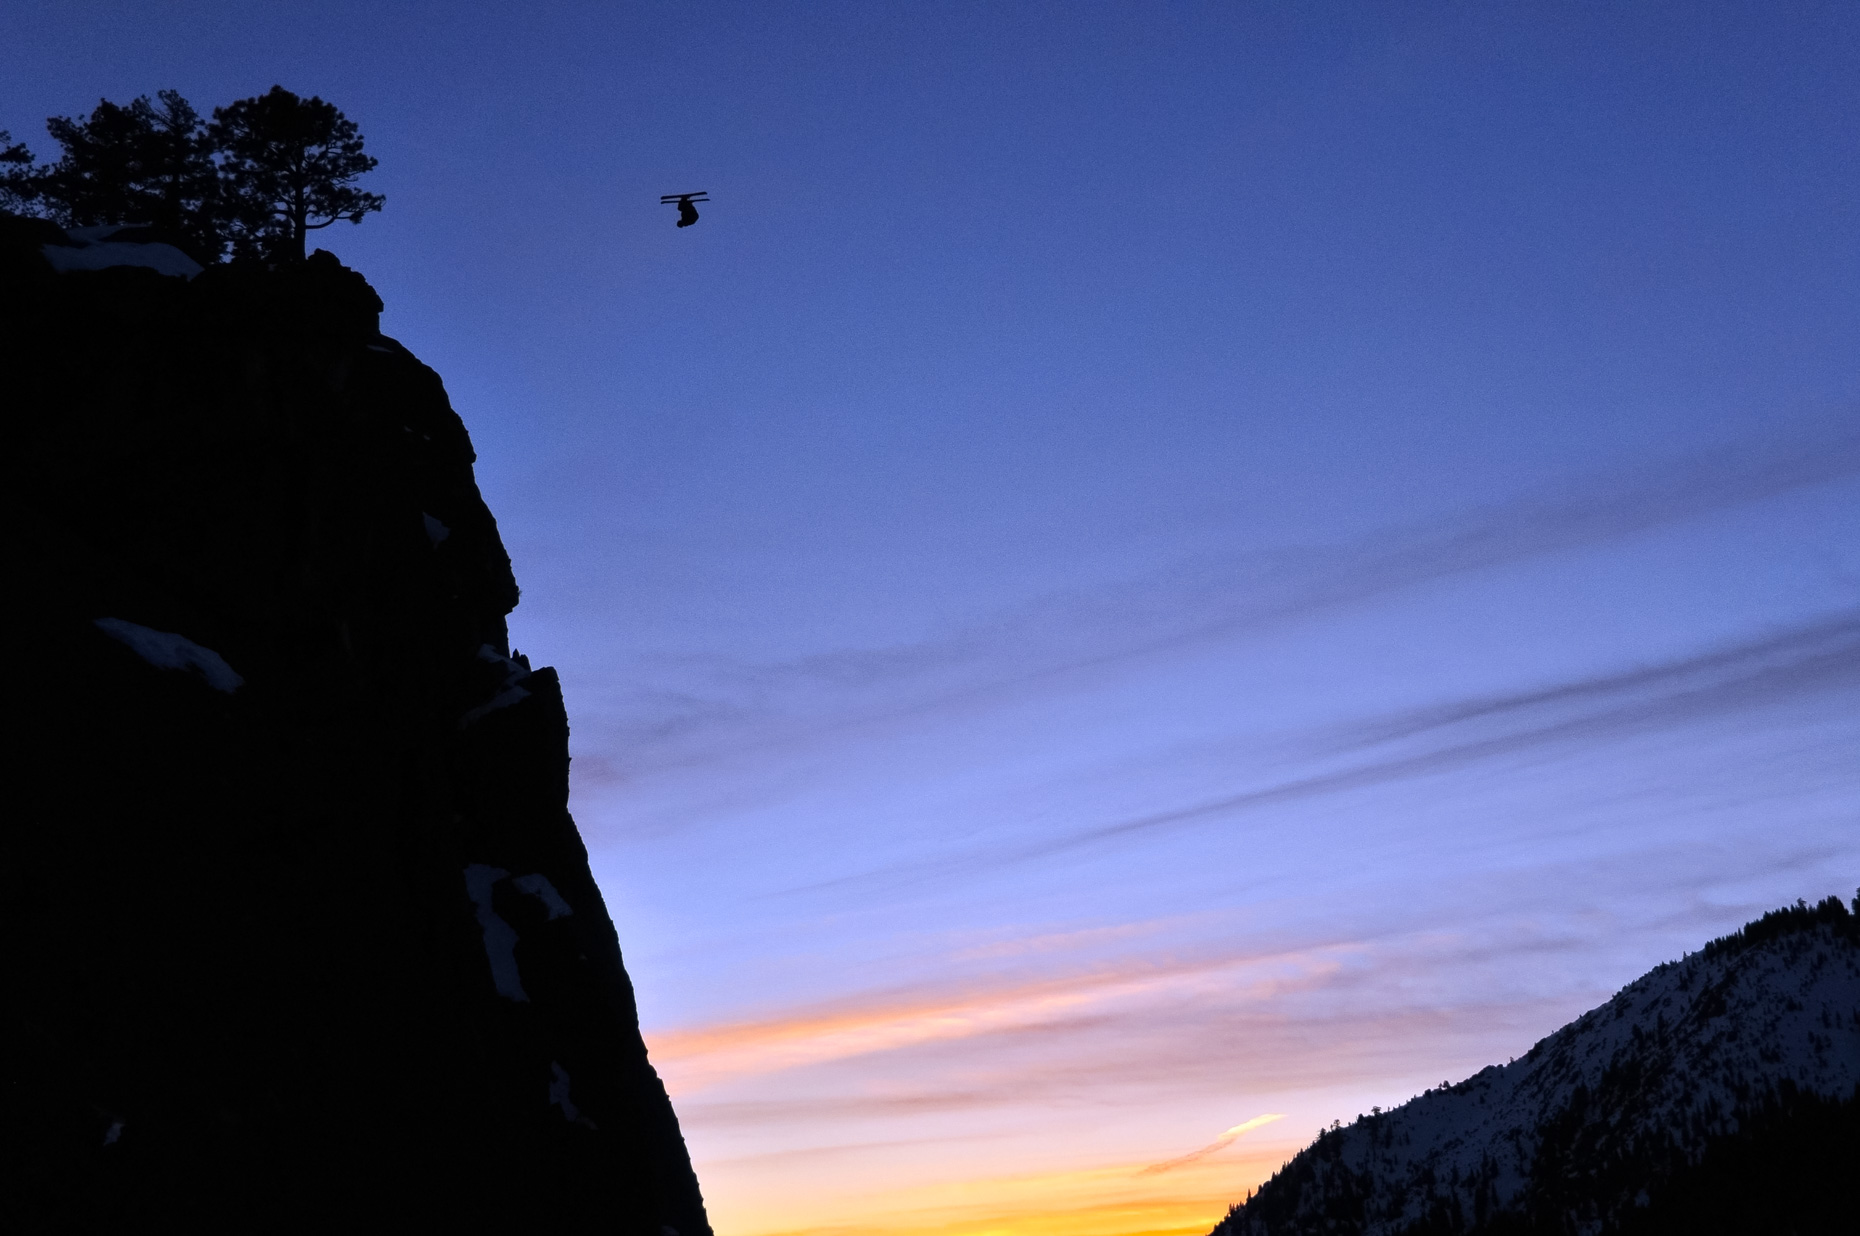 Lovers Leap Ski BASE Jump - Josh Daiek - Strawberry, California